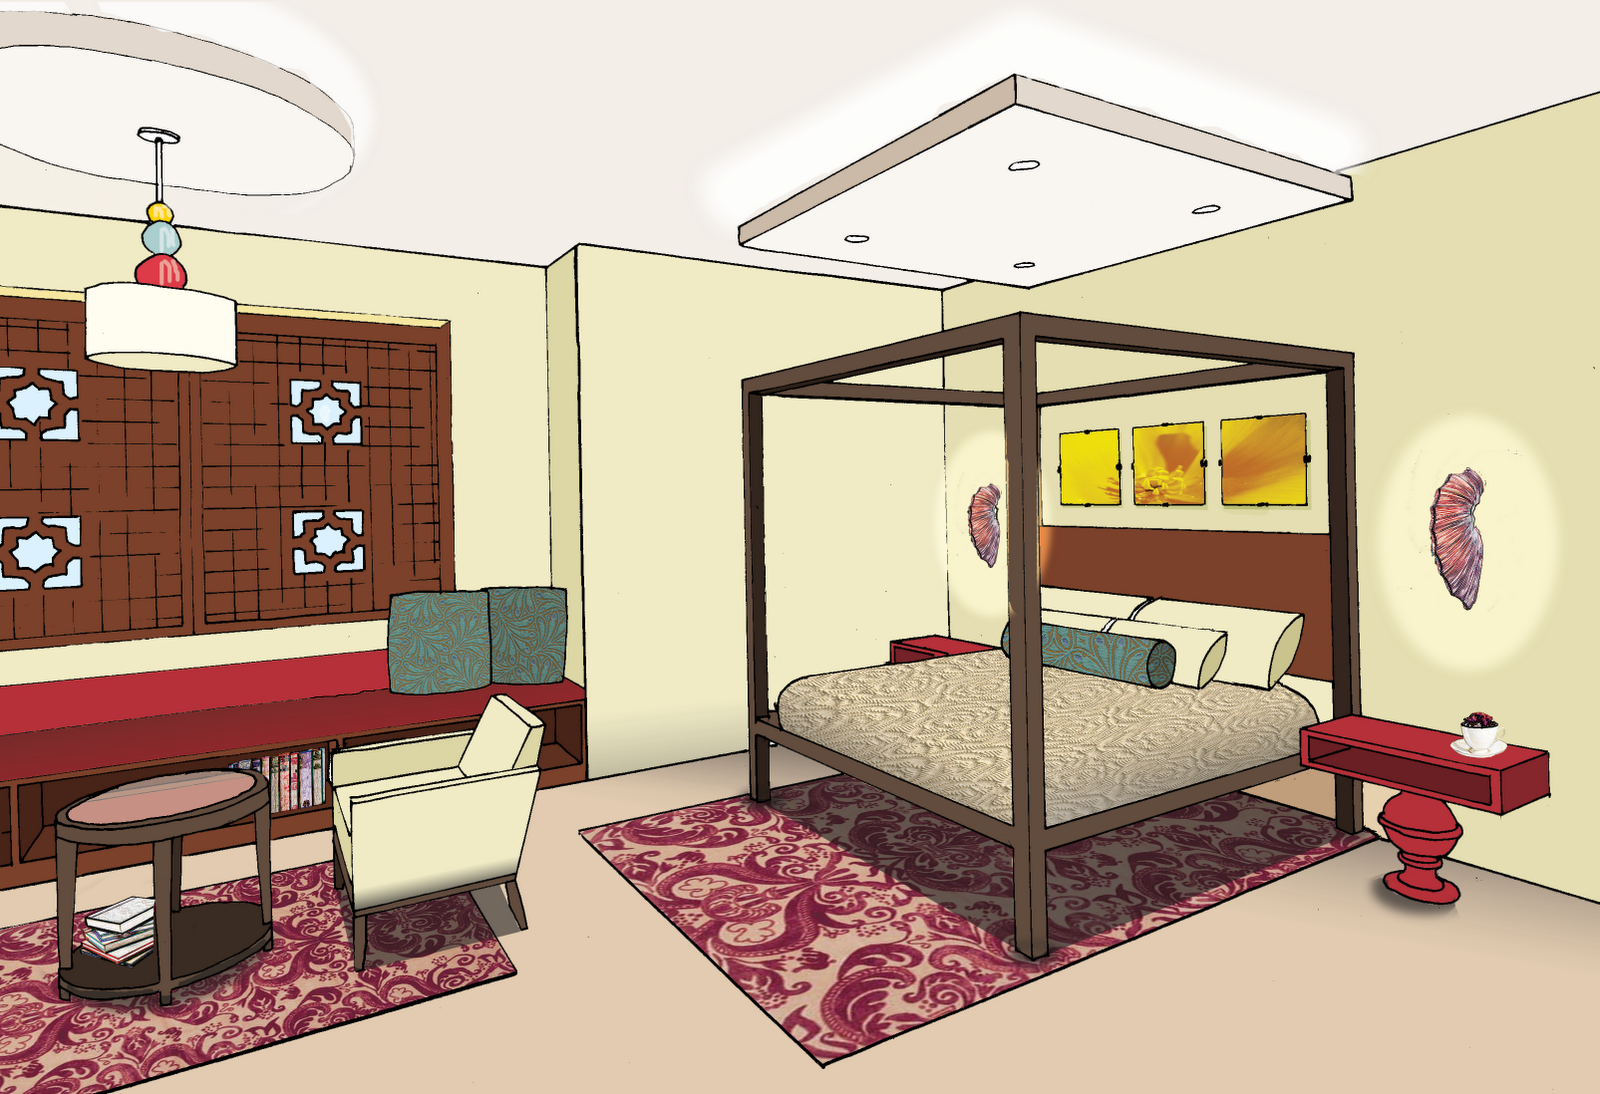 the gallery for one point perspective drawing of a bedroom